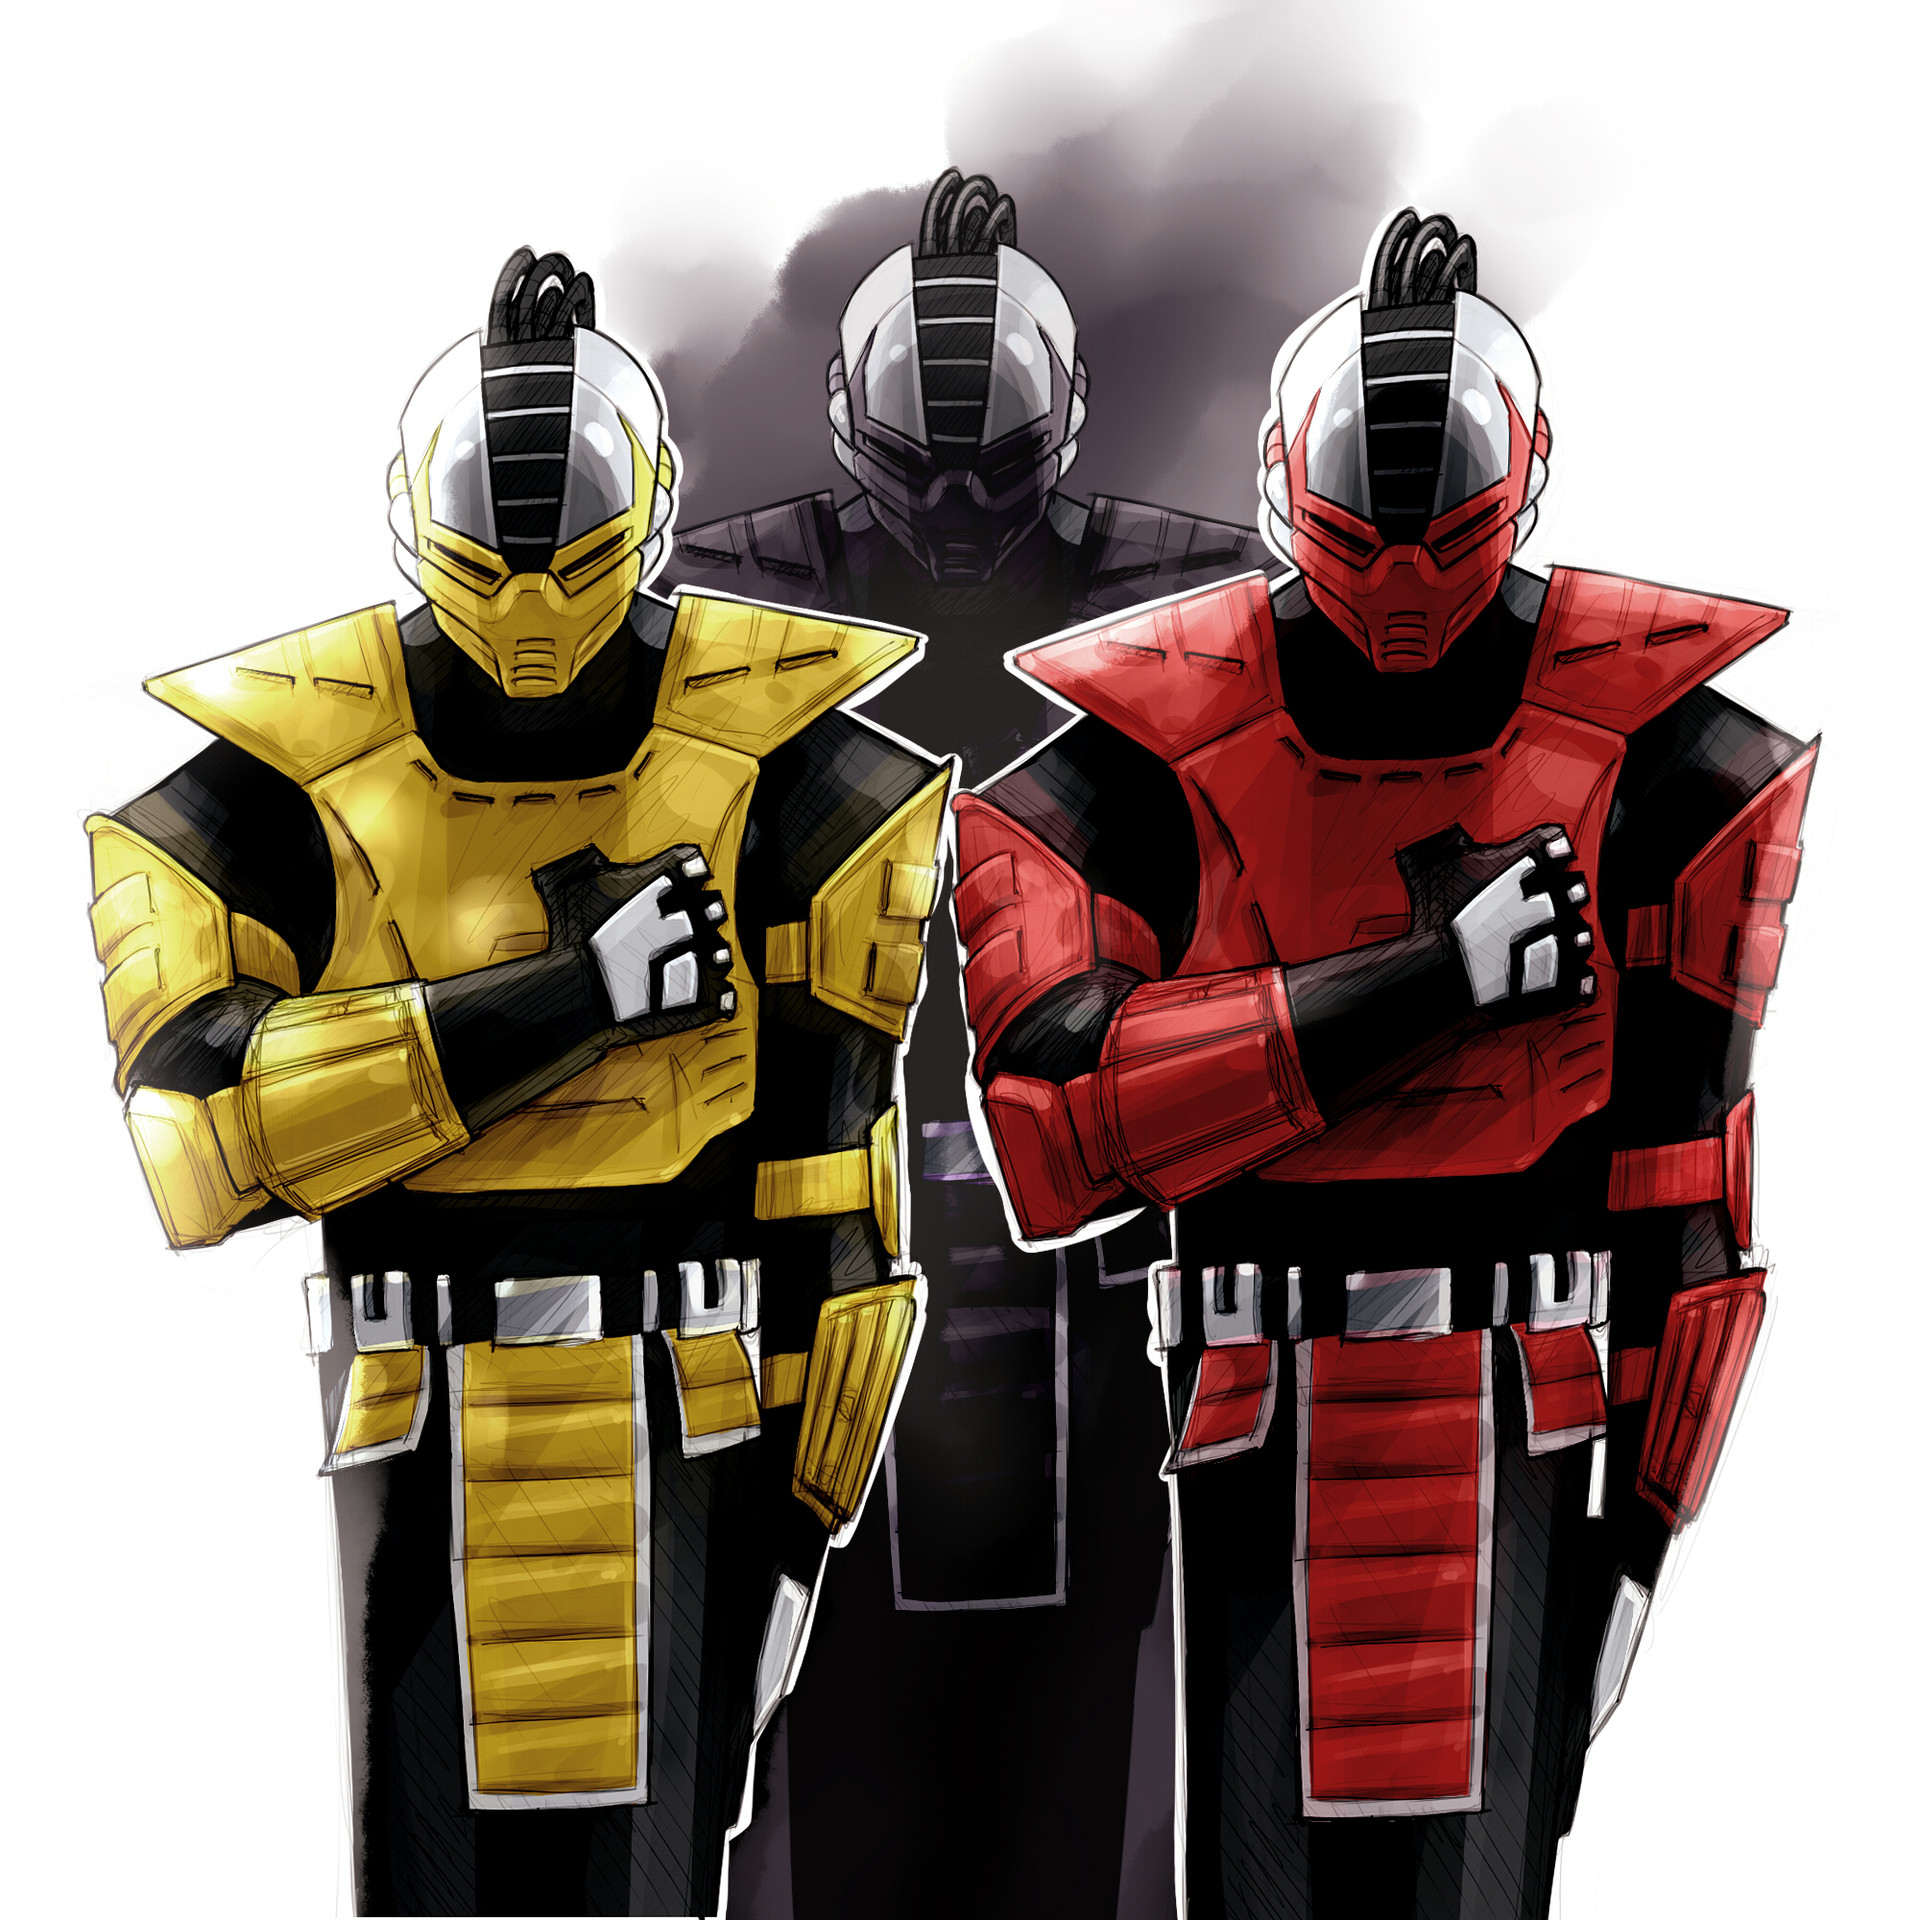 Evgeny Yurichev Cyrax Sector Smoke Breakthrough cyrax is the most progressive nrs character in mk9. evgeny yurichev cyrax sector smoke